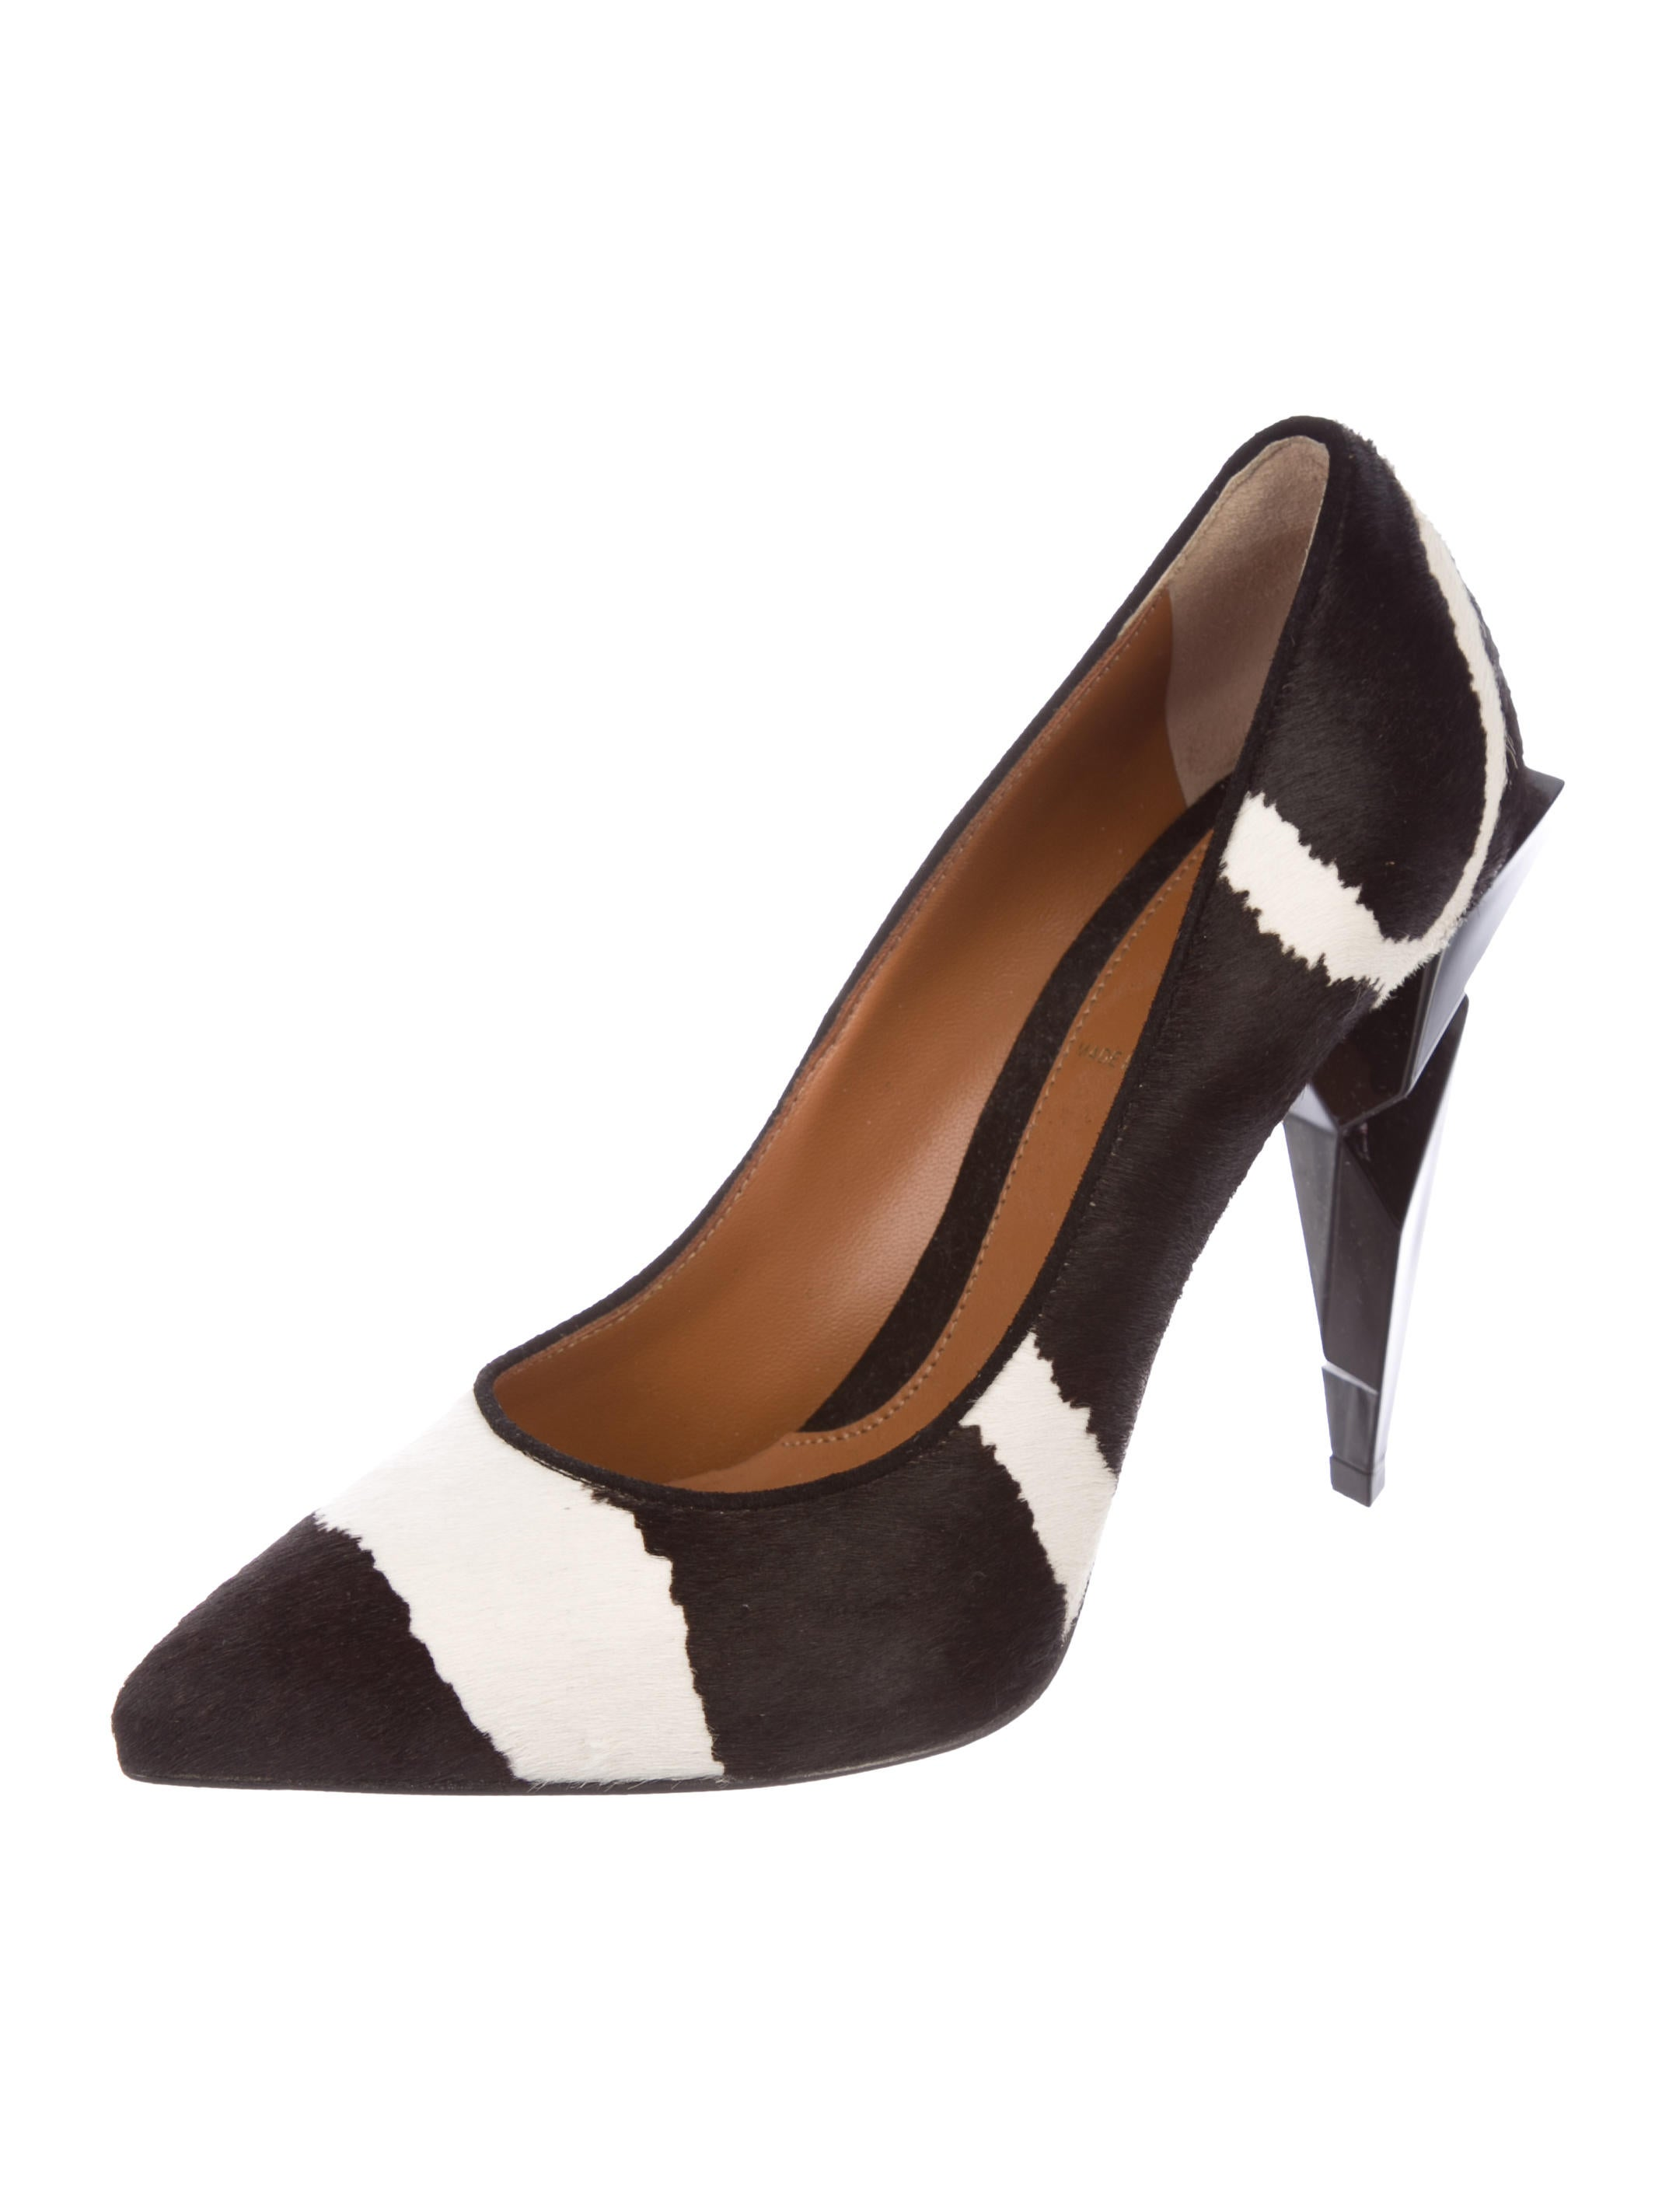 Manchester cheap online professional Fendi Ponyhair Printed Pumps amazing price online ebay sale online free shipping sale online PuCaiYoF